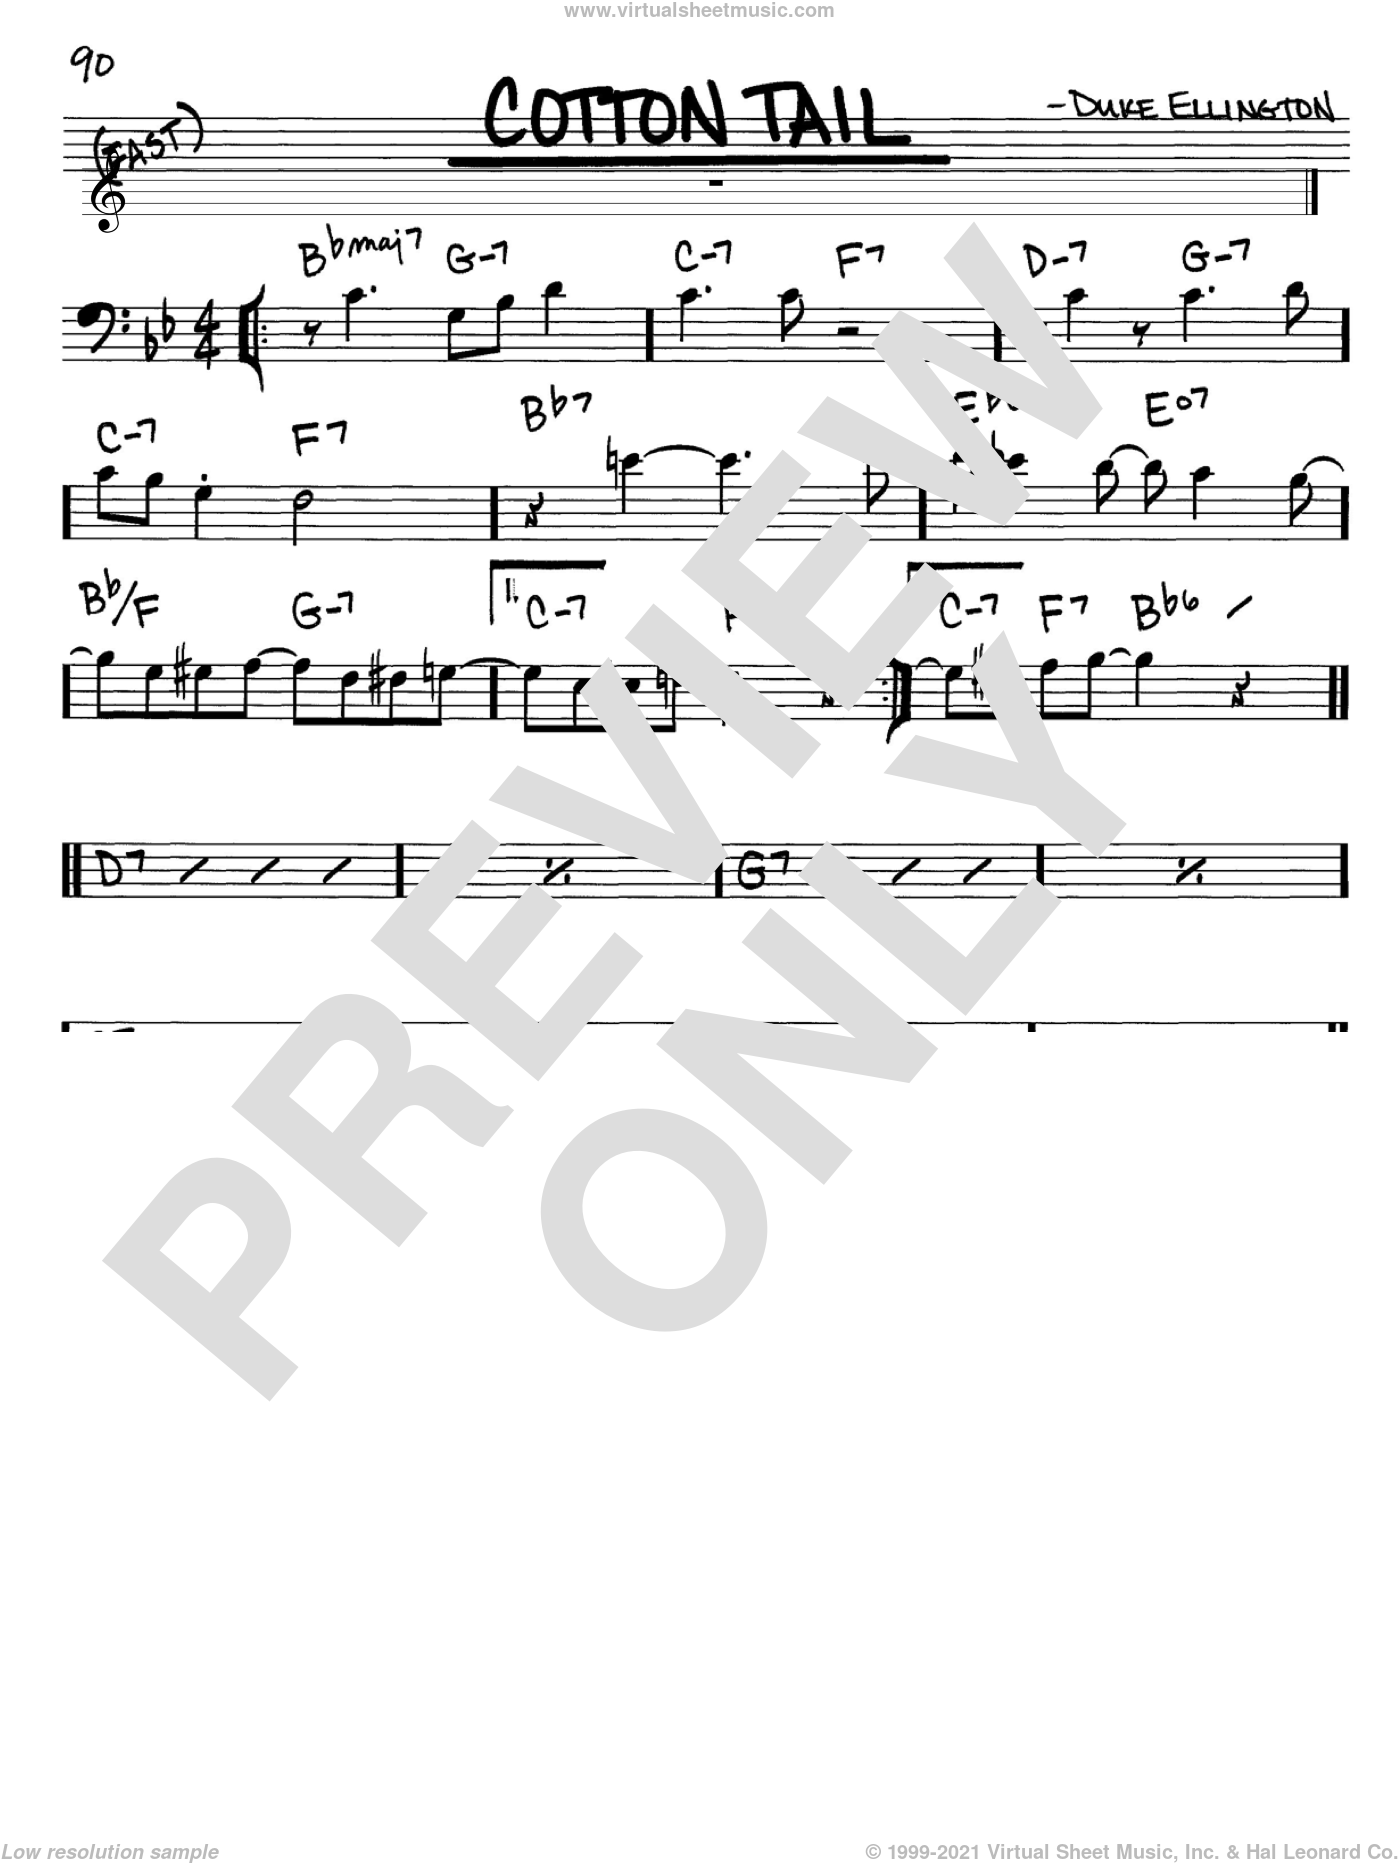 Cotton Tail sheet music for voice and other instruments (Bass Clef ) by Duke Ellington